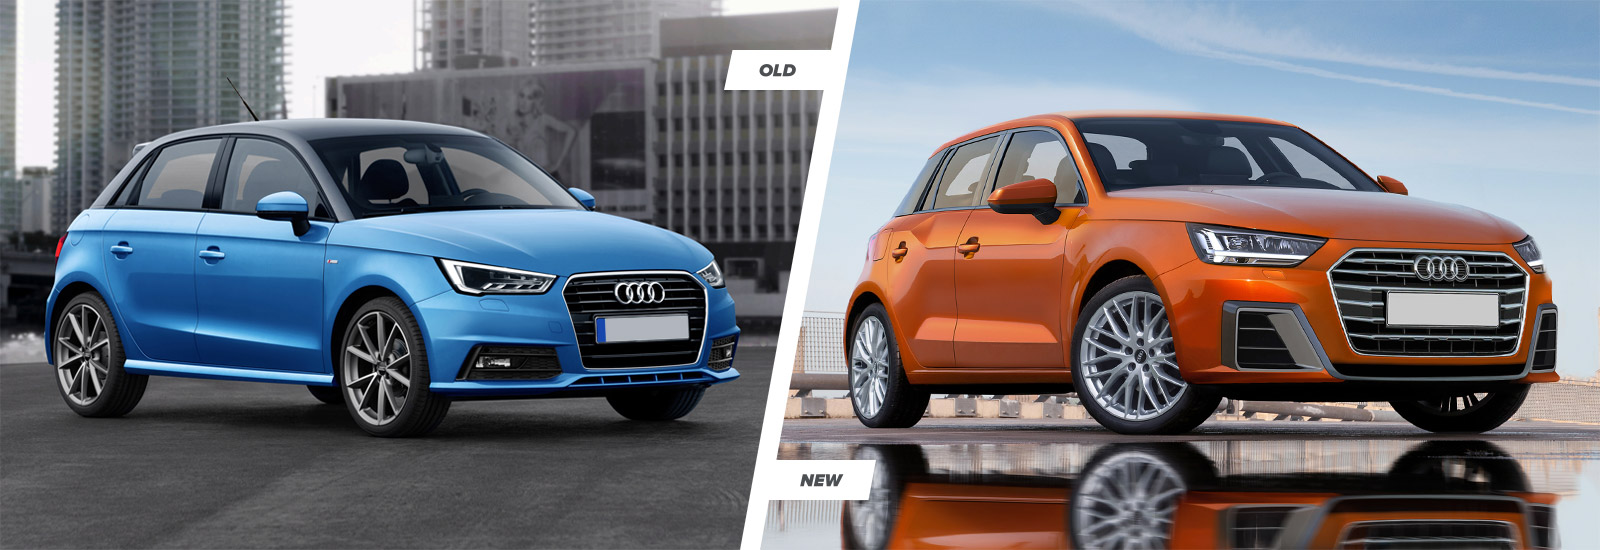 2018 audi 2 door. delighful audi the new a1 should feature a squarer rear end and flatter roofline than the  old car u2013 especially in fivedoor sportback guise while q2u0027s funky  inside 2018 audi 2 door